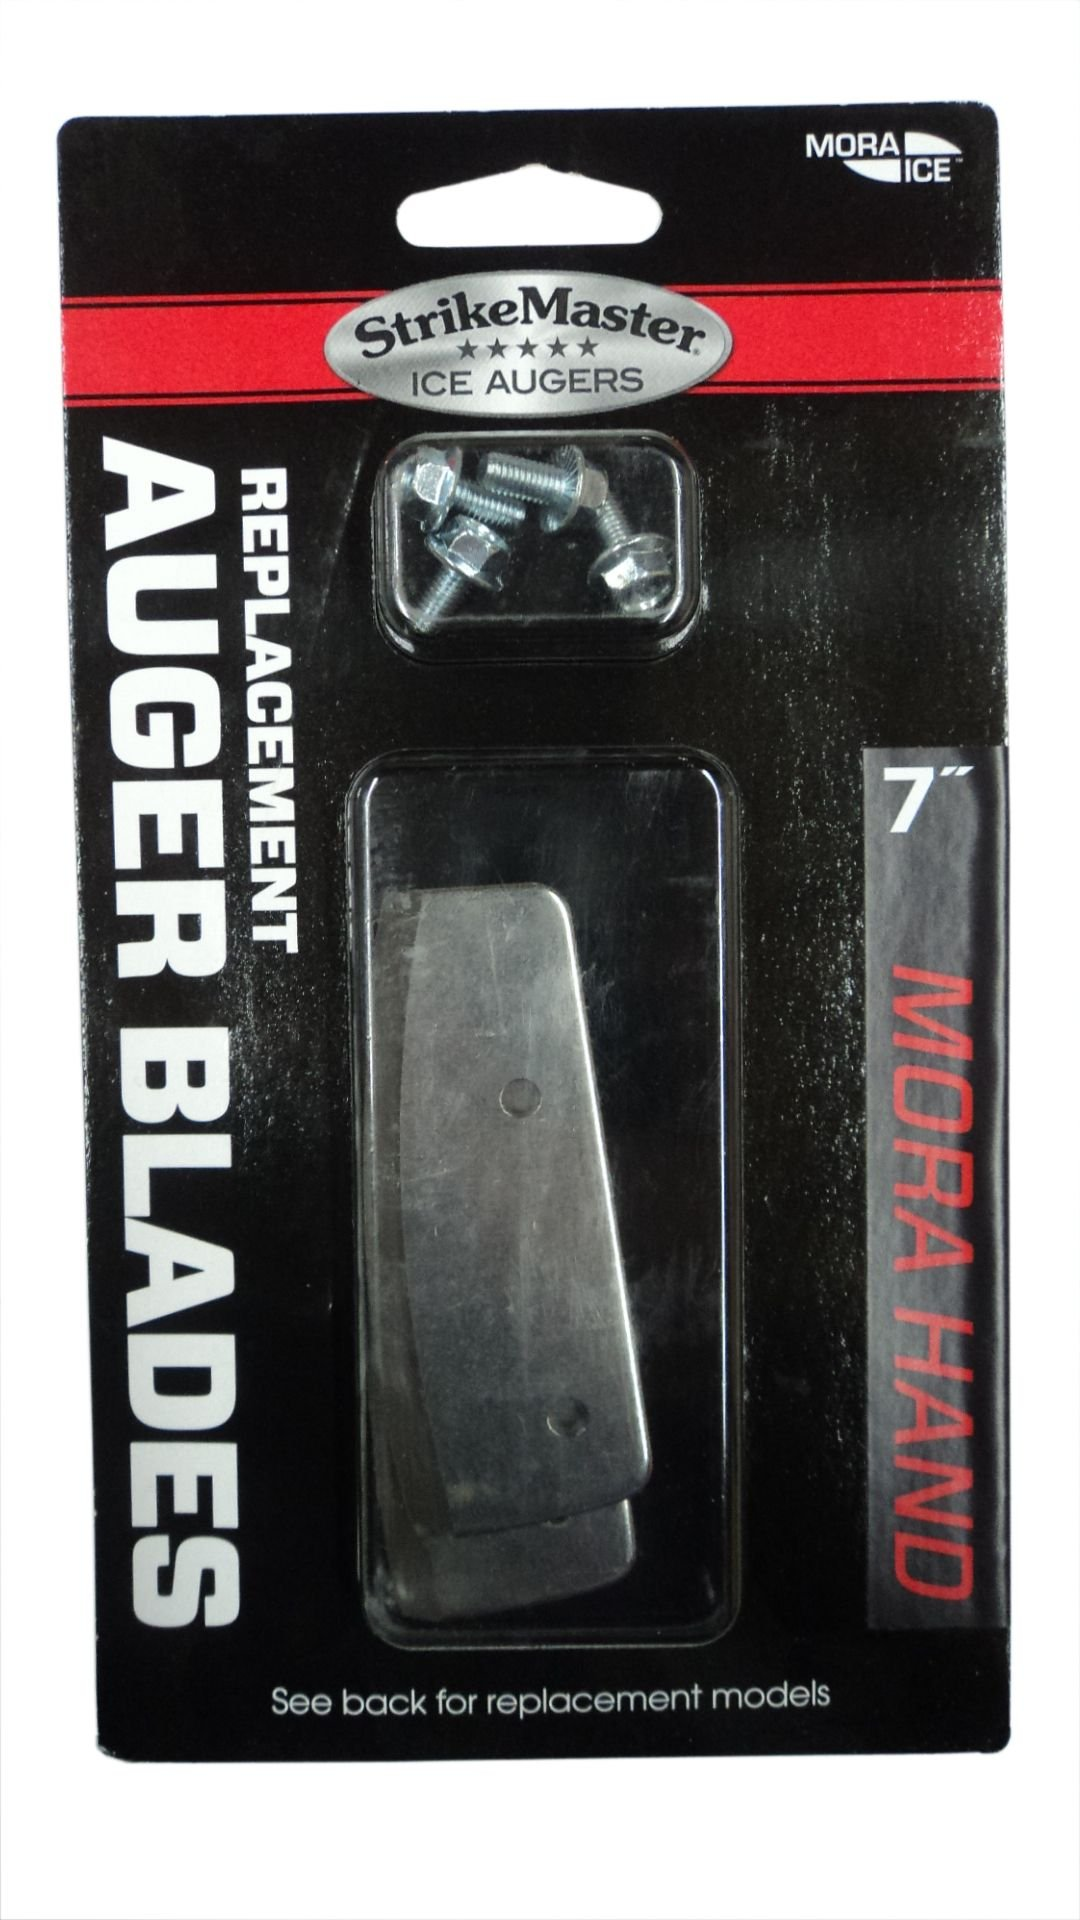 7'' Mora Replacement Blades - For Mora Ice Auger (Blue Shaft) - #MD-7B - Made in Sweden